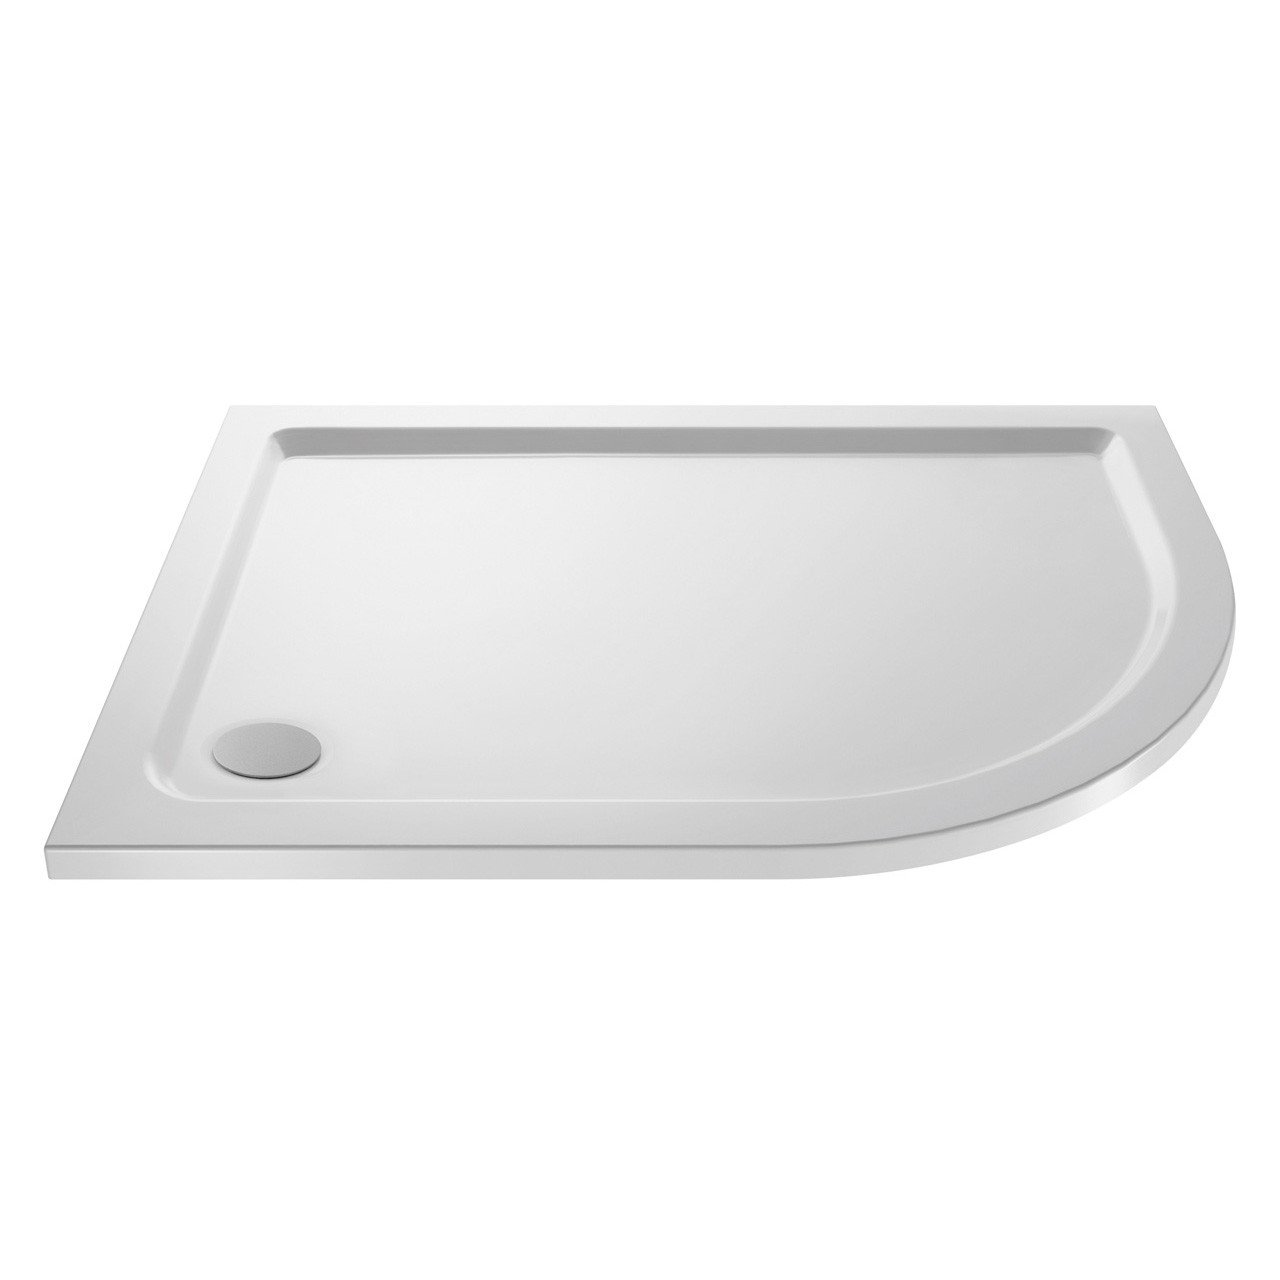 Premiere Pearlstone 1000mm x 800mm x 40mm Right Hand Offset Quadrant Shower Tray - NTP109